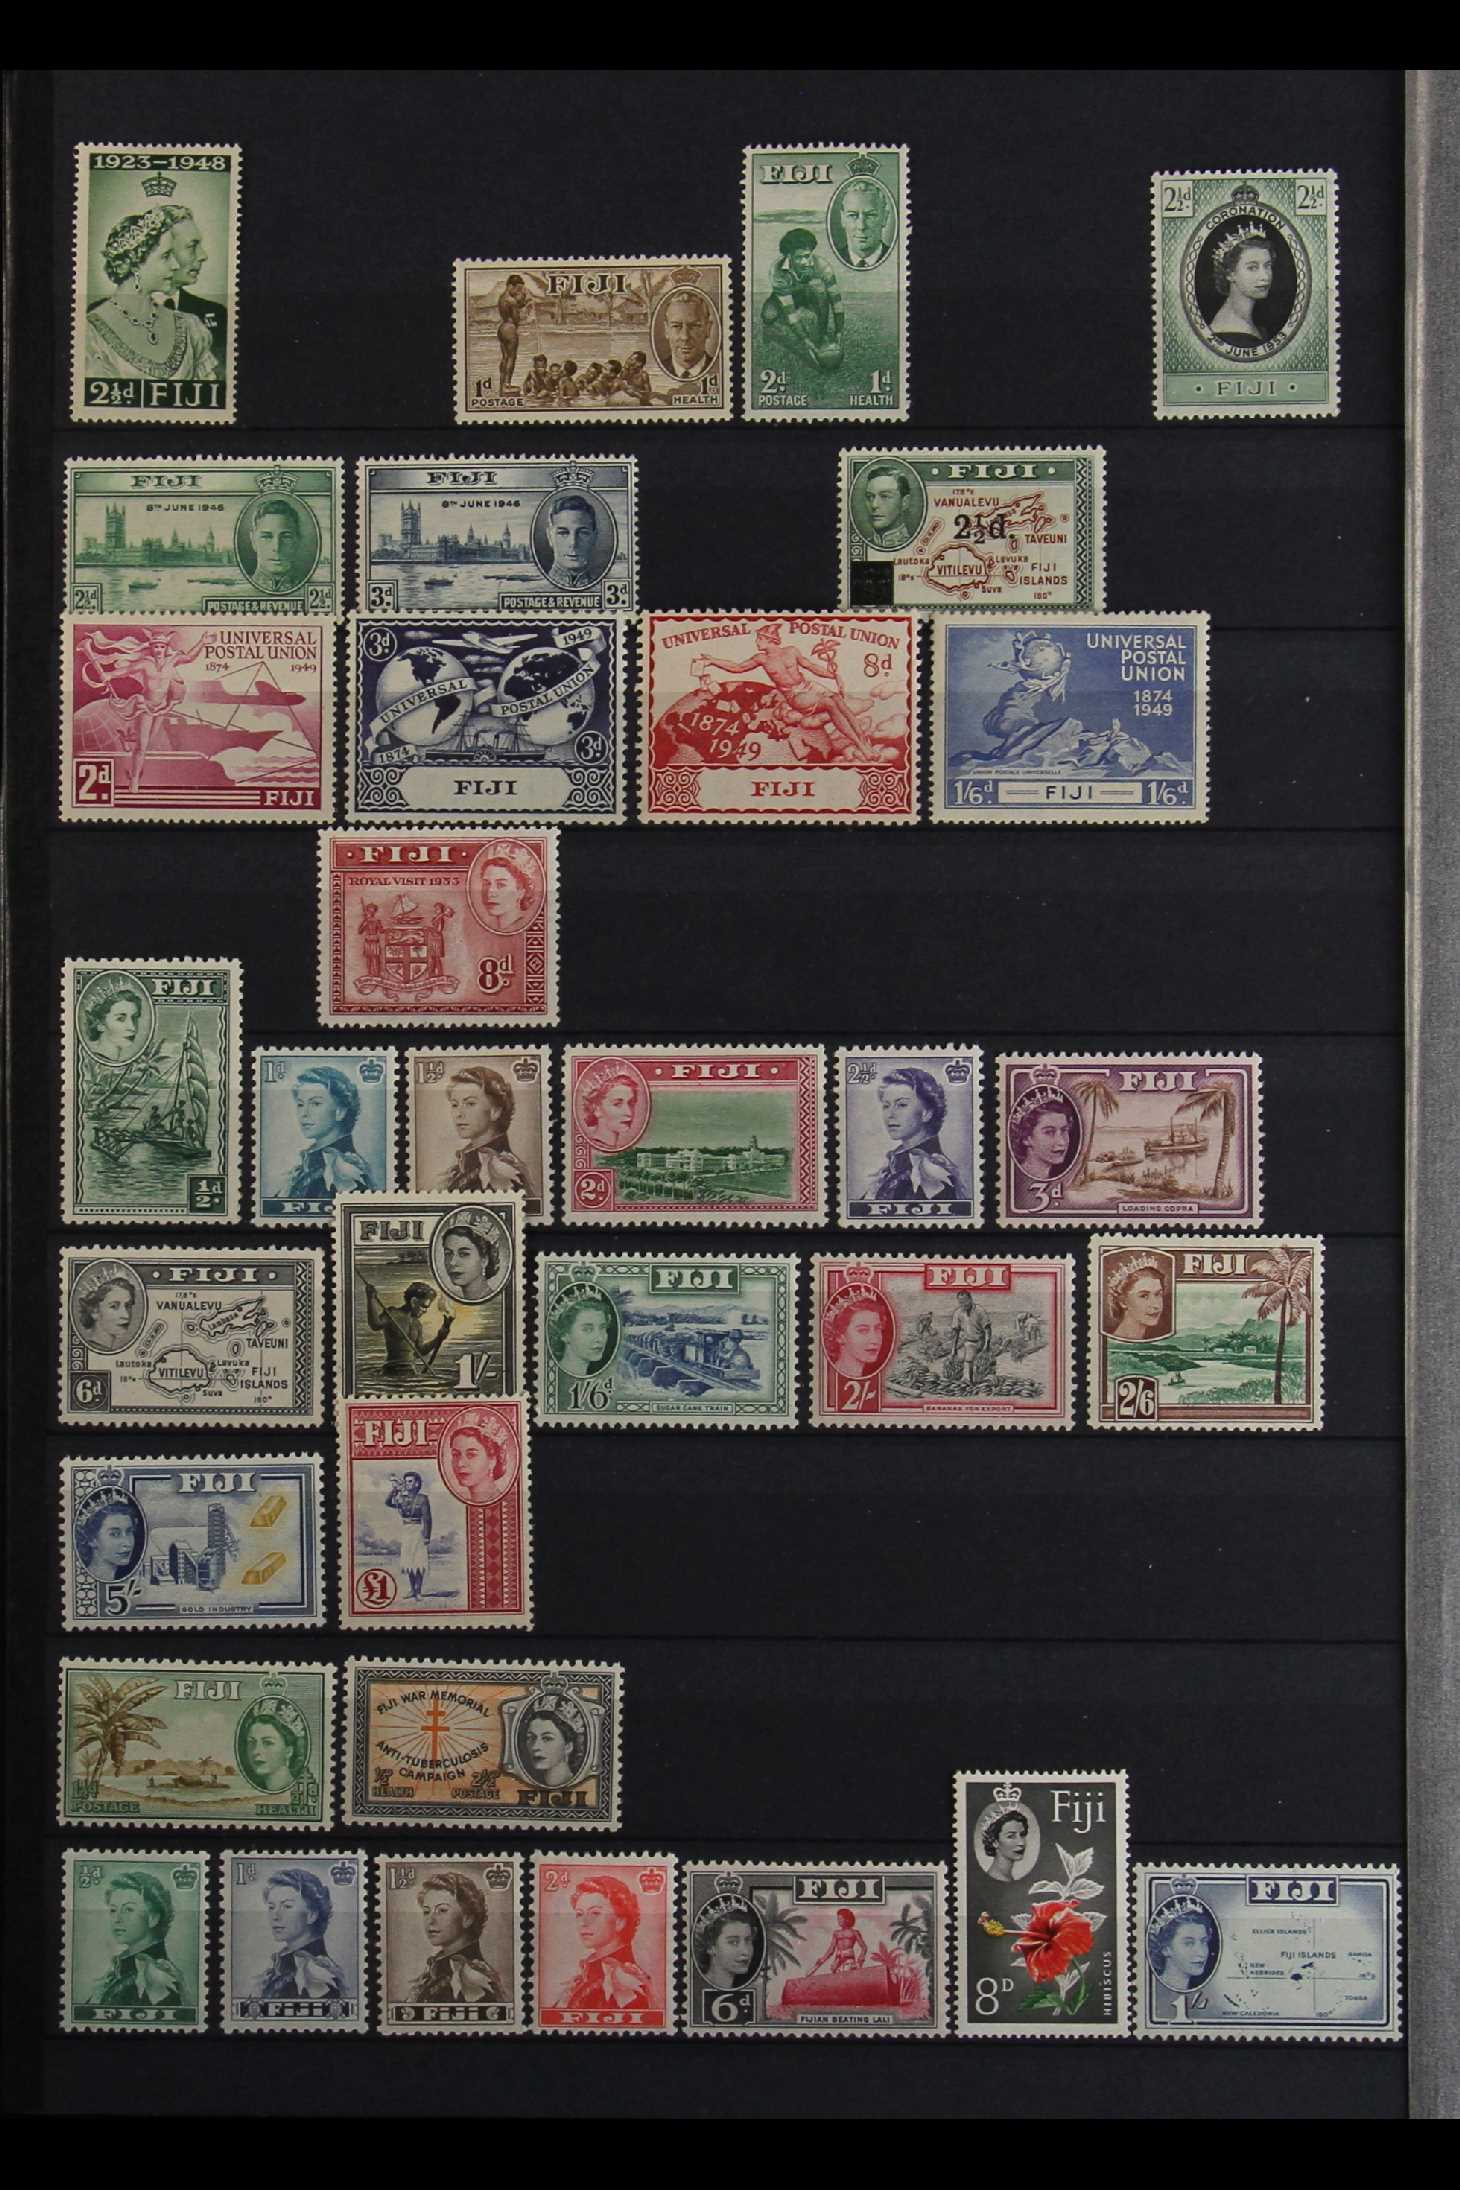 FIJI 1903-70 FINE MINT COLLECTION incl. 1903 set to 5d (excl. ½d), 1904-09 ½d & 1d, 1906-12 to 2½ - Image 4 of 9